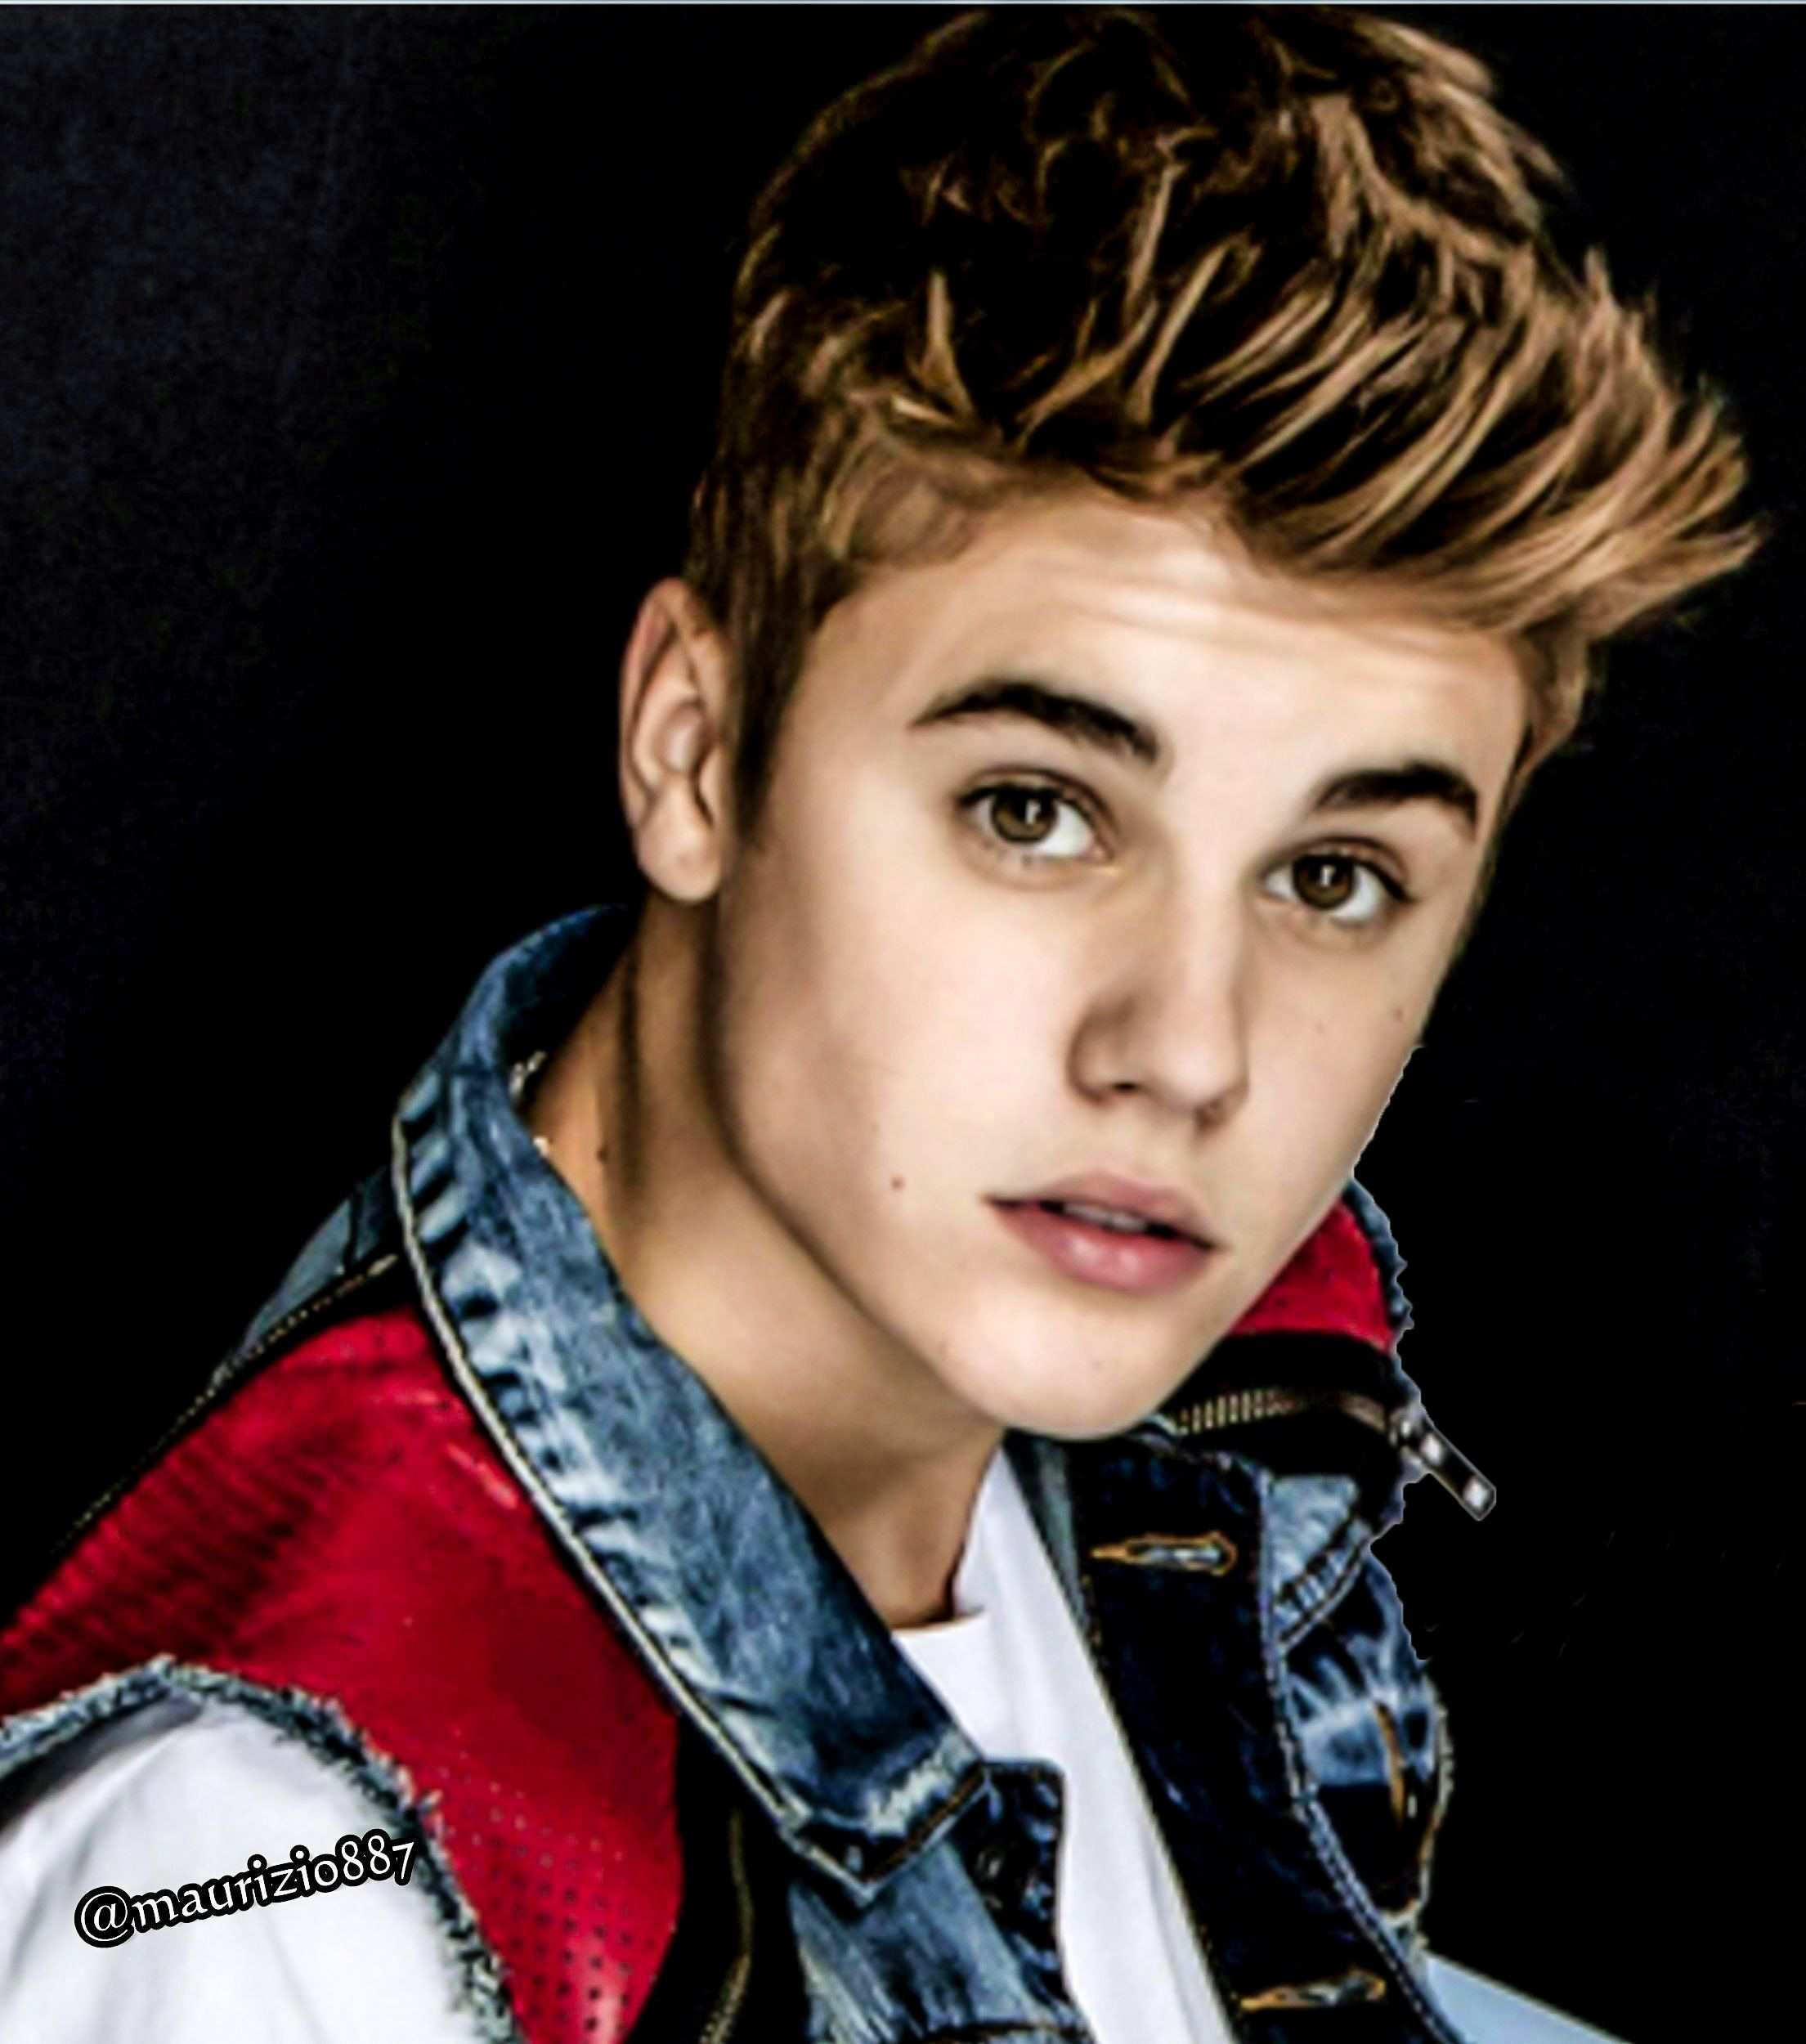 Justin Bieber New HD Wallpaper